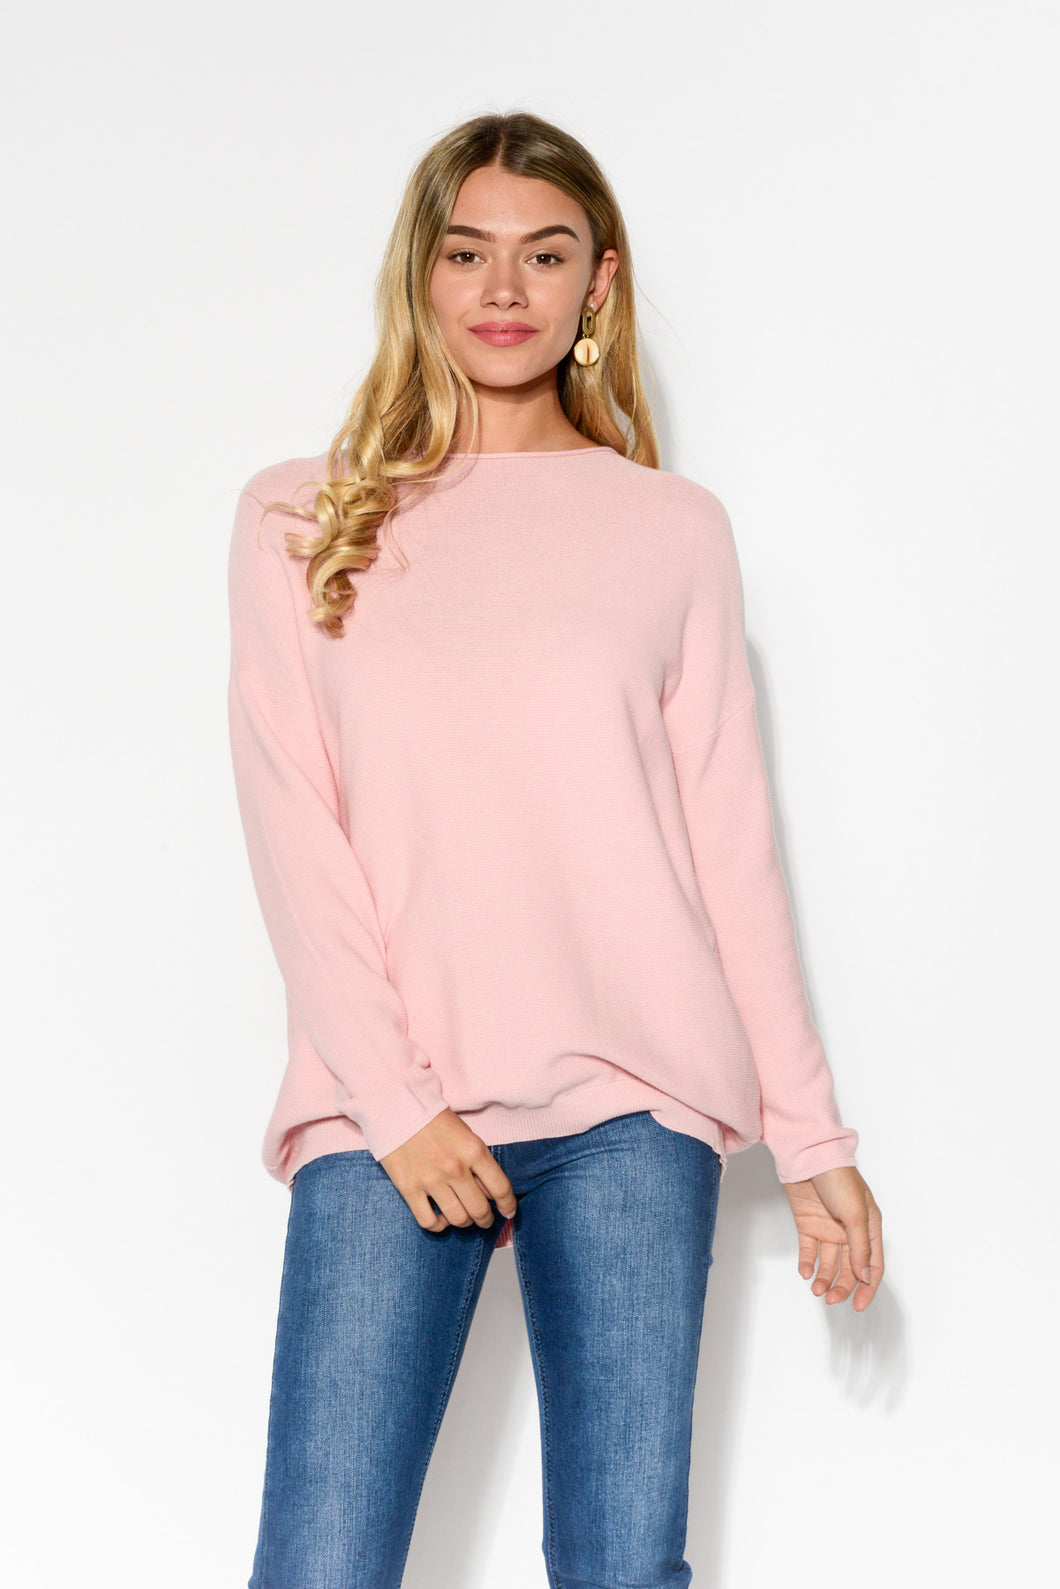 Cora Pink Knit Cotton Jumper - Blue Bungalow